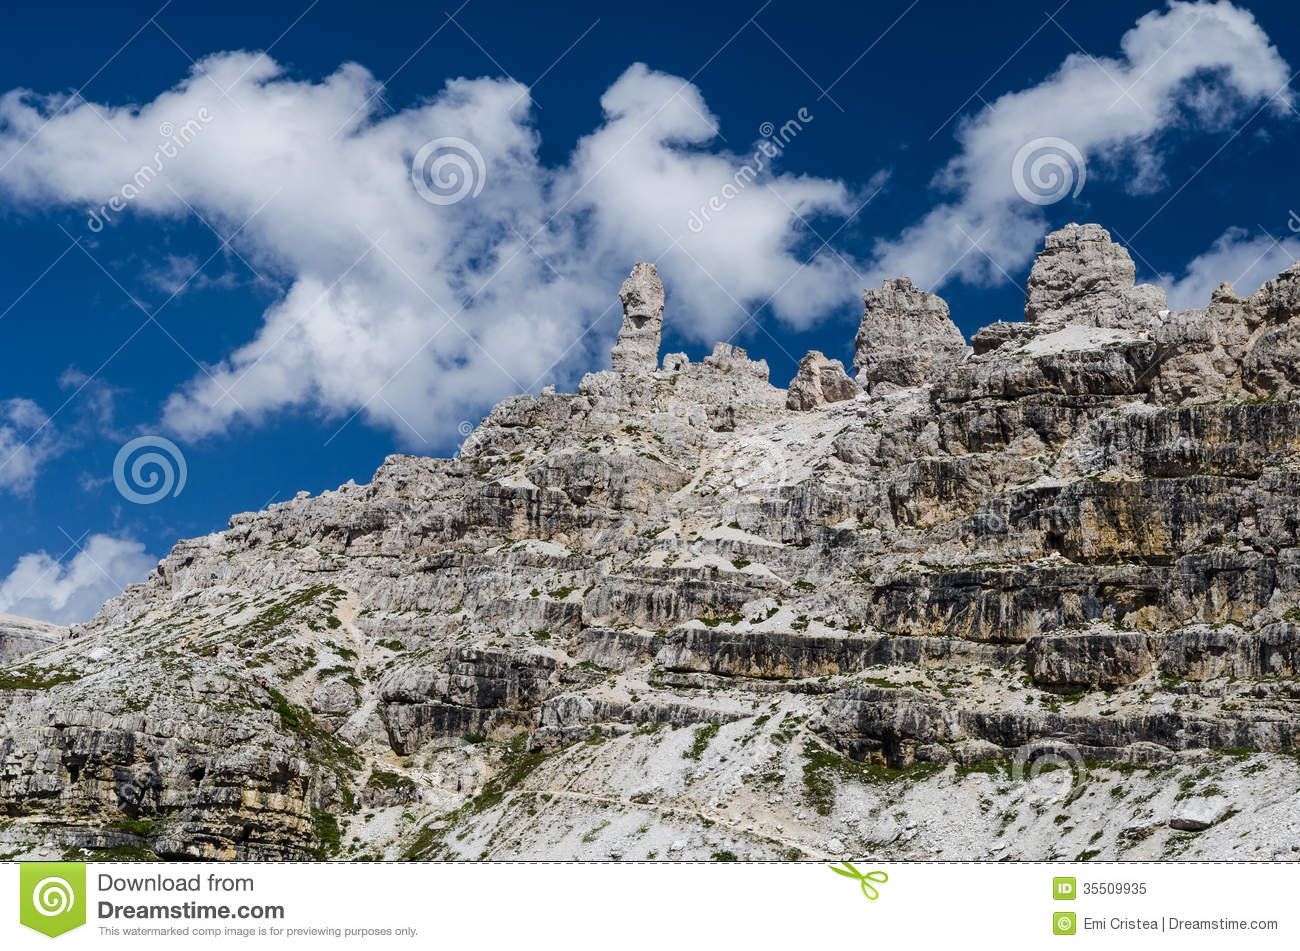 Sexten Dolomites In South Tyrol, Italy Royalty Free Stock Photo.